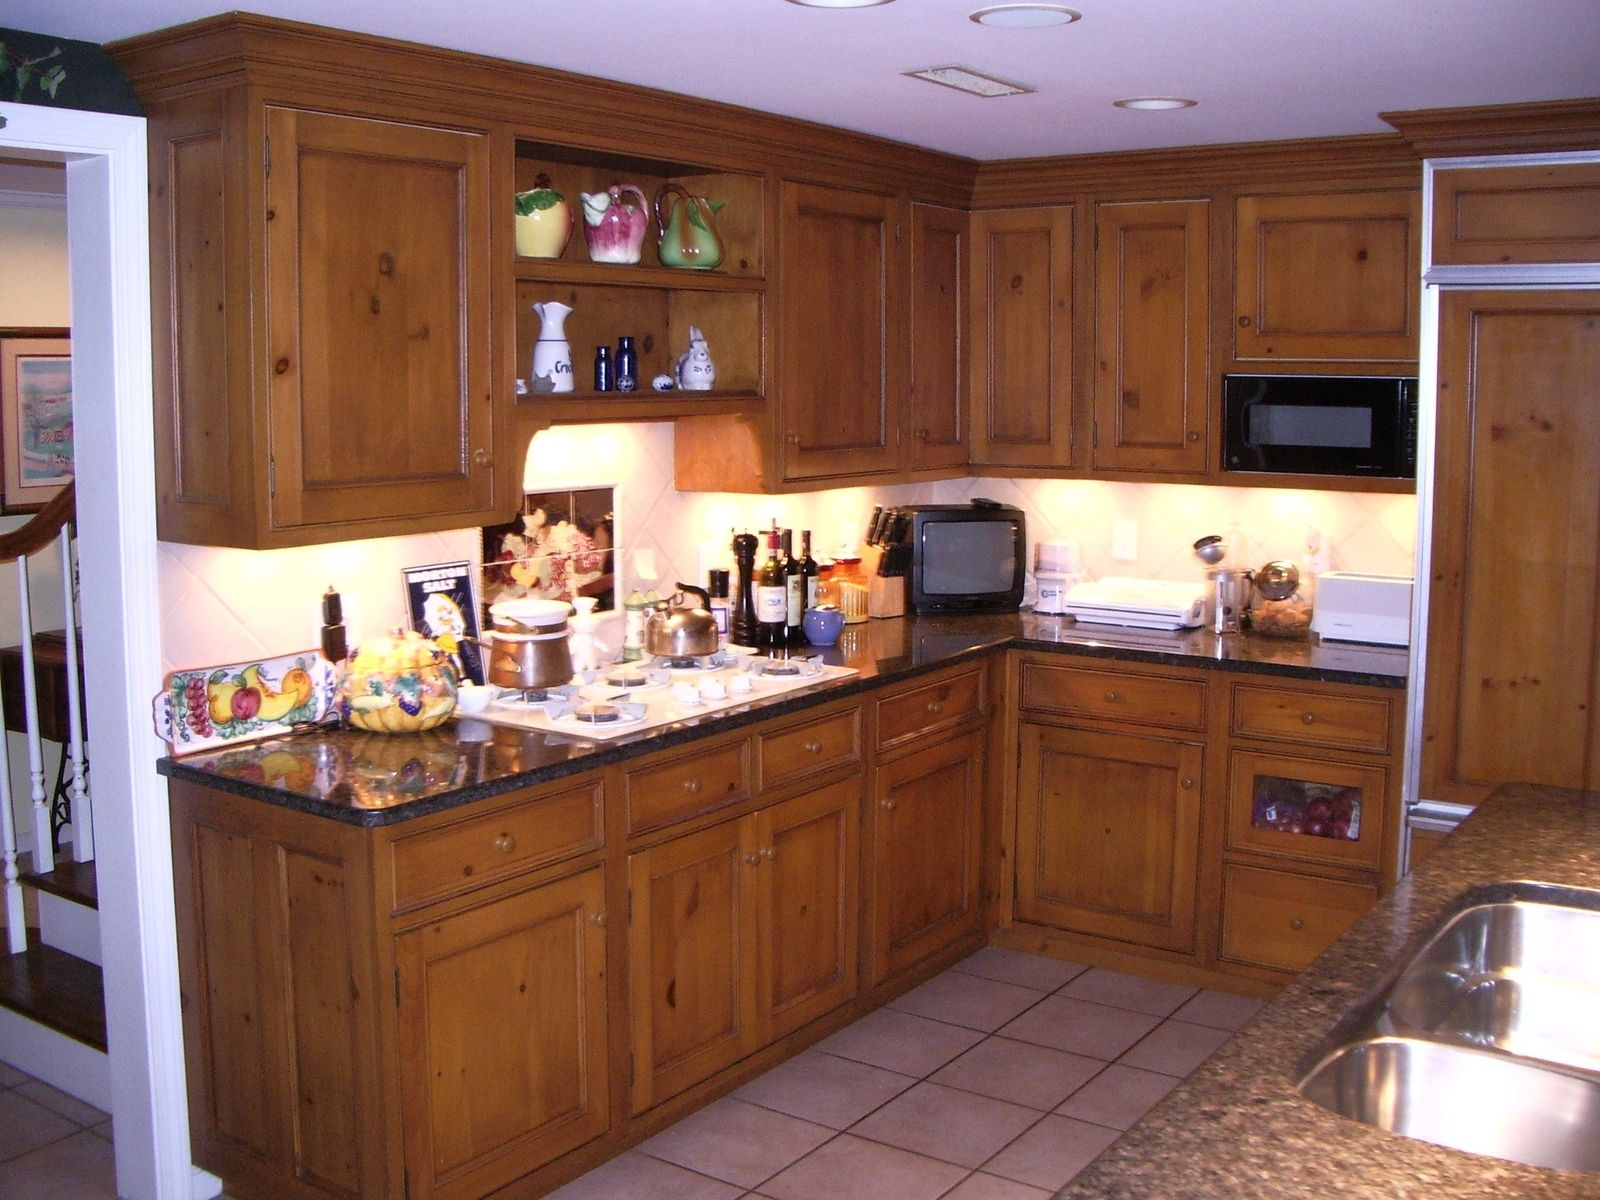 Handmade Knotty Pine Kitchen By Edko Cabinets Llc